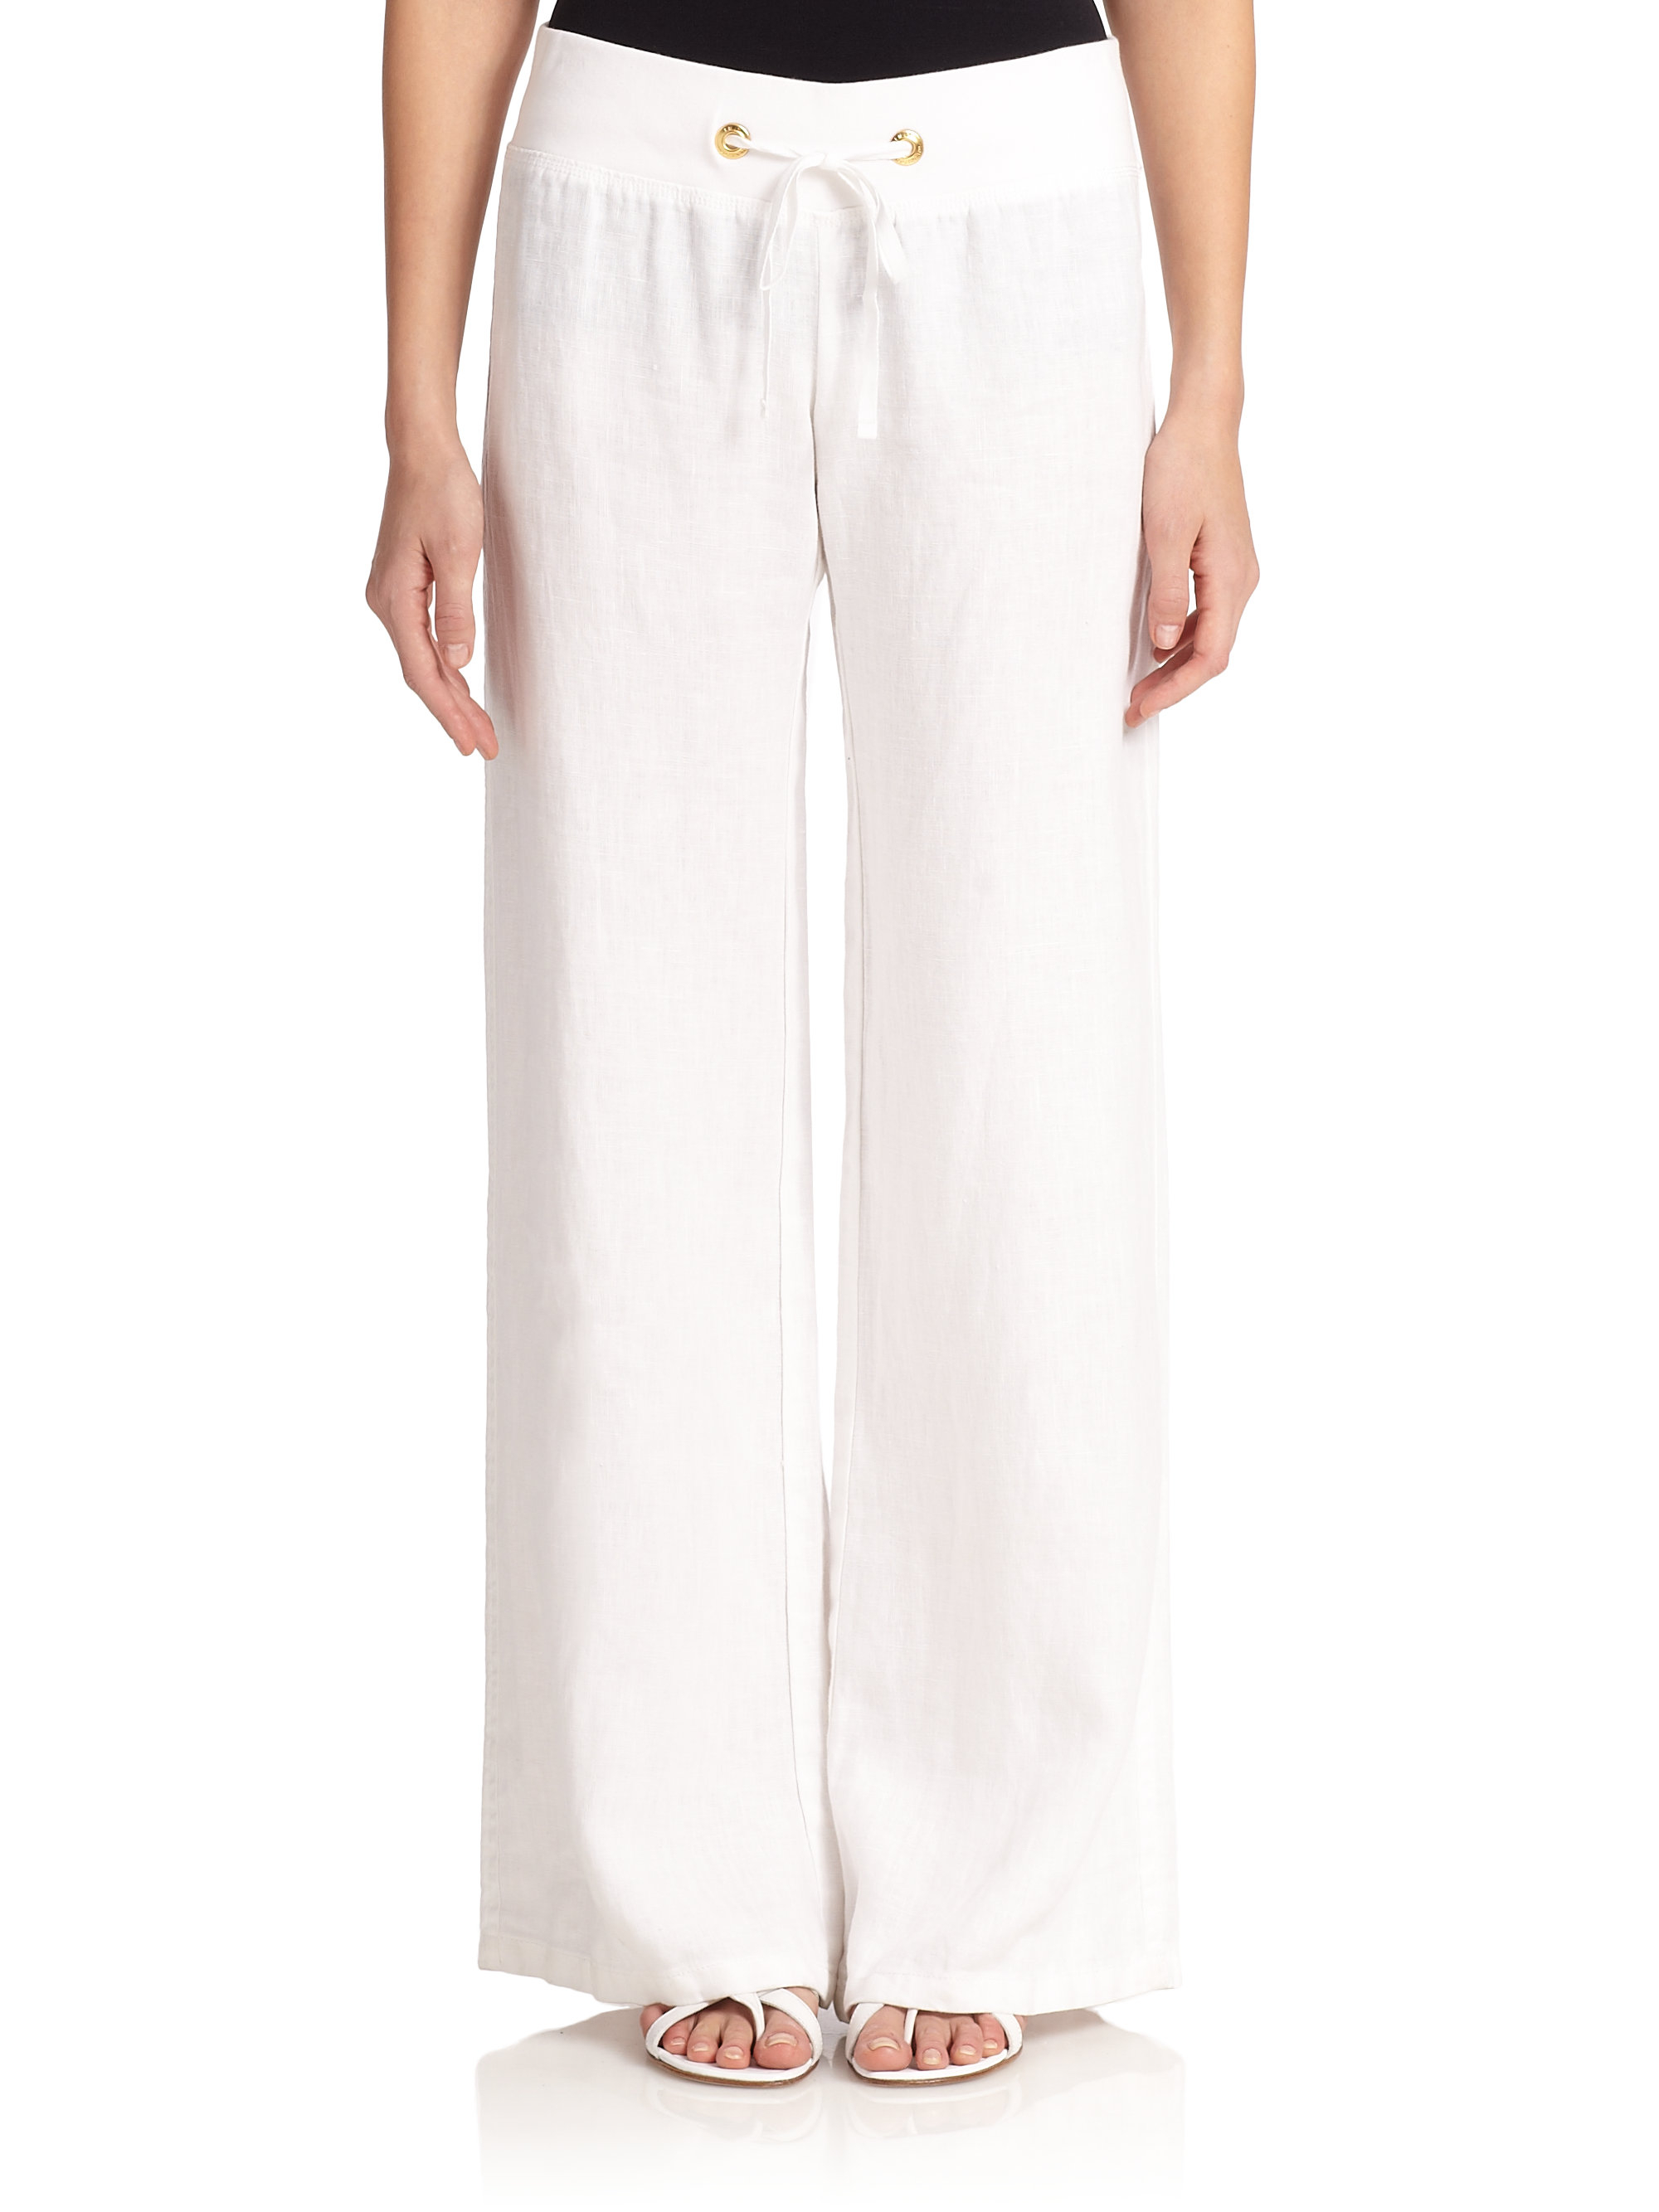 9c5c36ca796b6b Gallery. Previously sold at: Saks Fifth Avenue · Women's Linen Pants